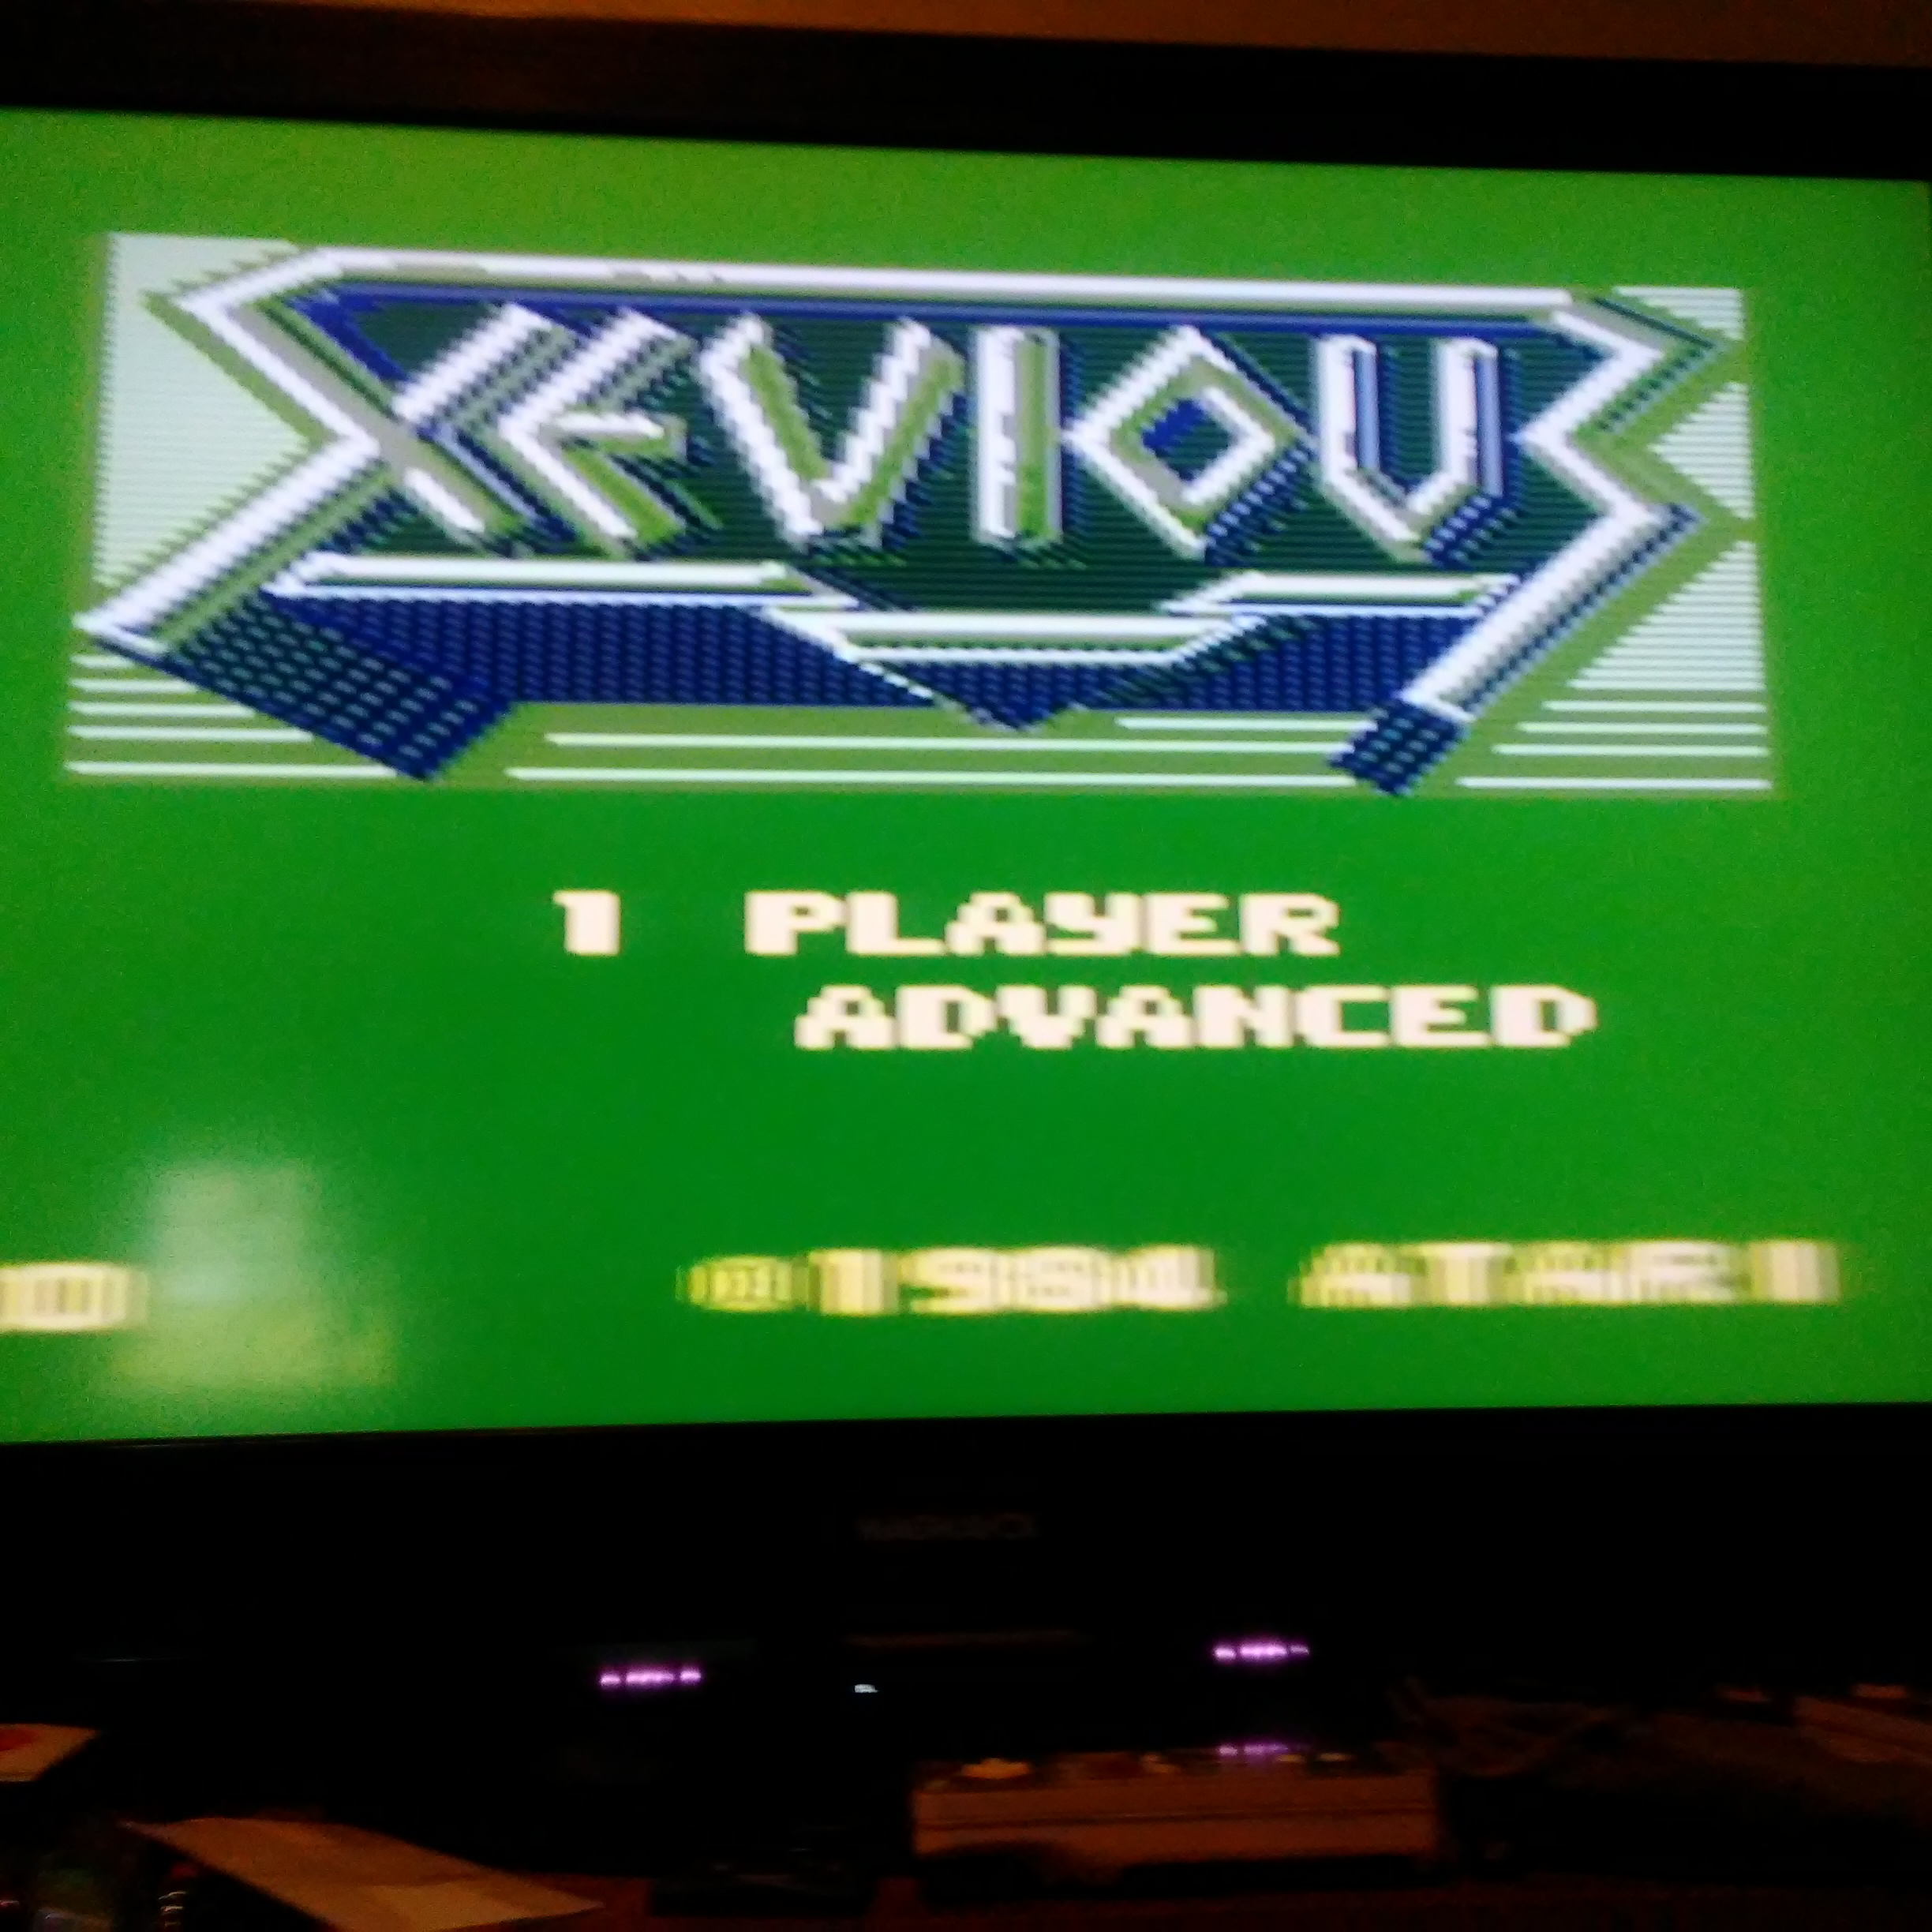 Pjsteele: Xevious: Advanced (Atari 7800 Emulated) 24,160 points on 2017-10-18 16:02:11